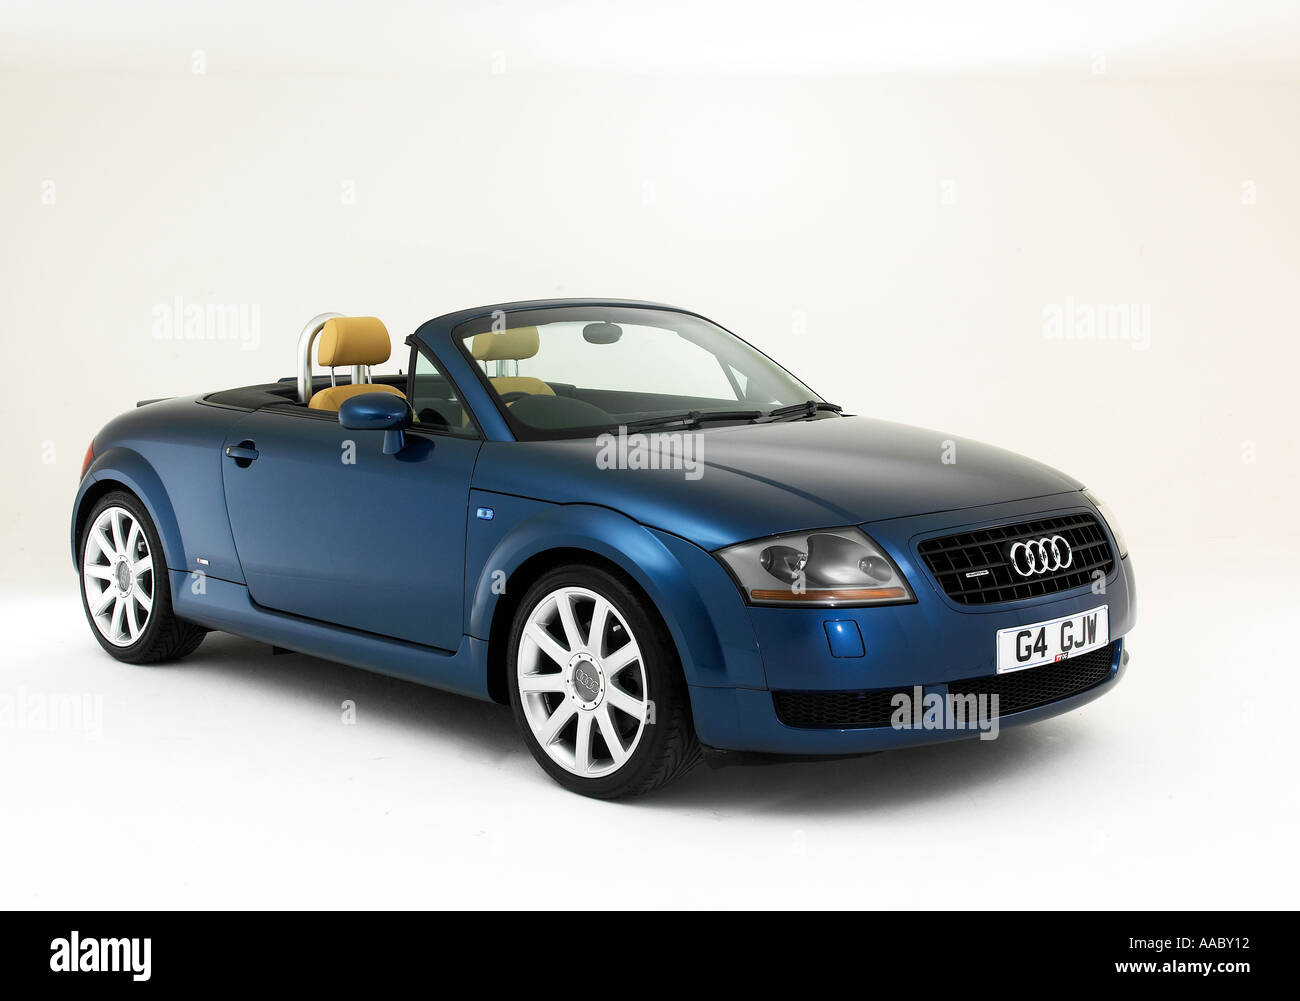 2003 Audi TT Roadster Stock Photo